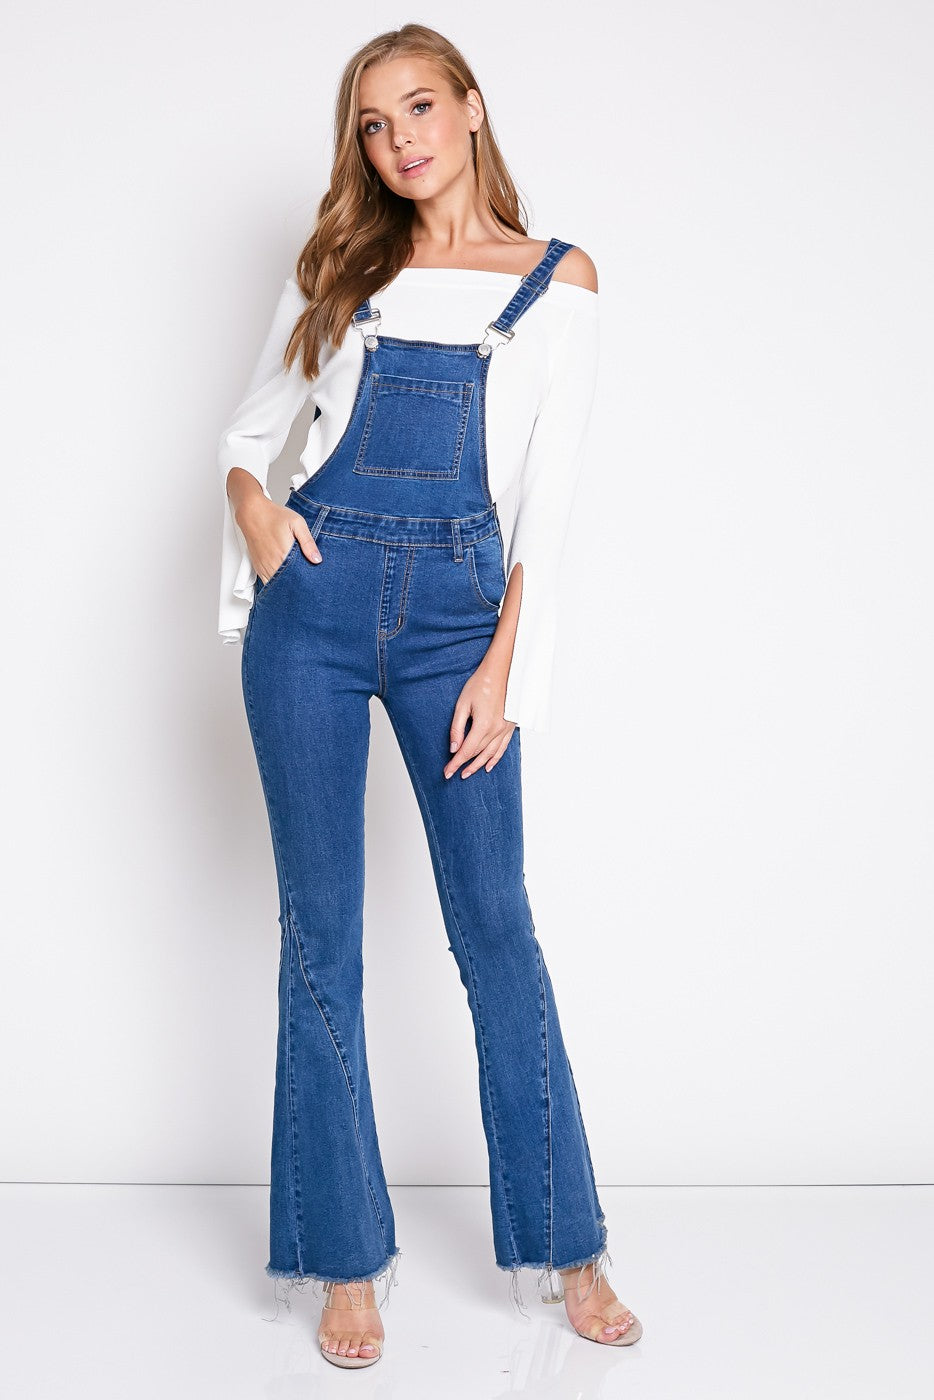 Country Flare Overalls in Denim | Necessary Clothing